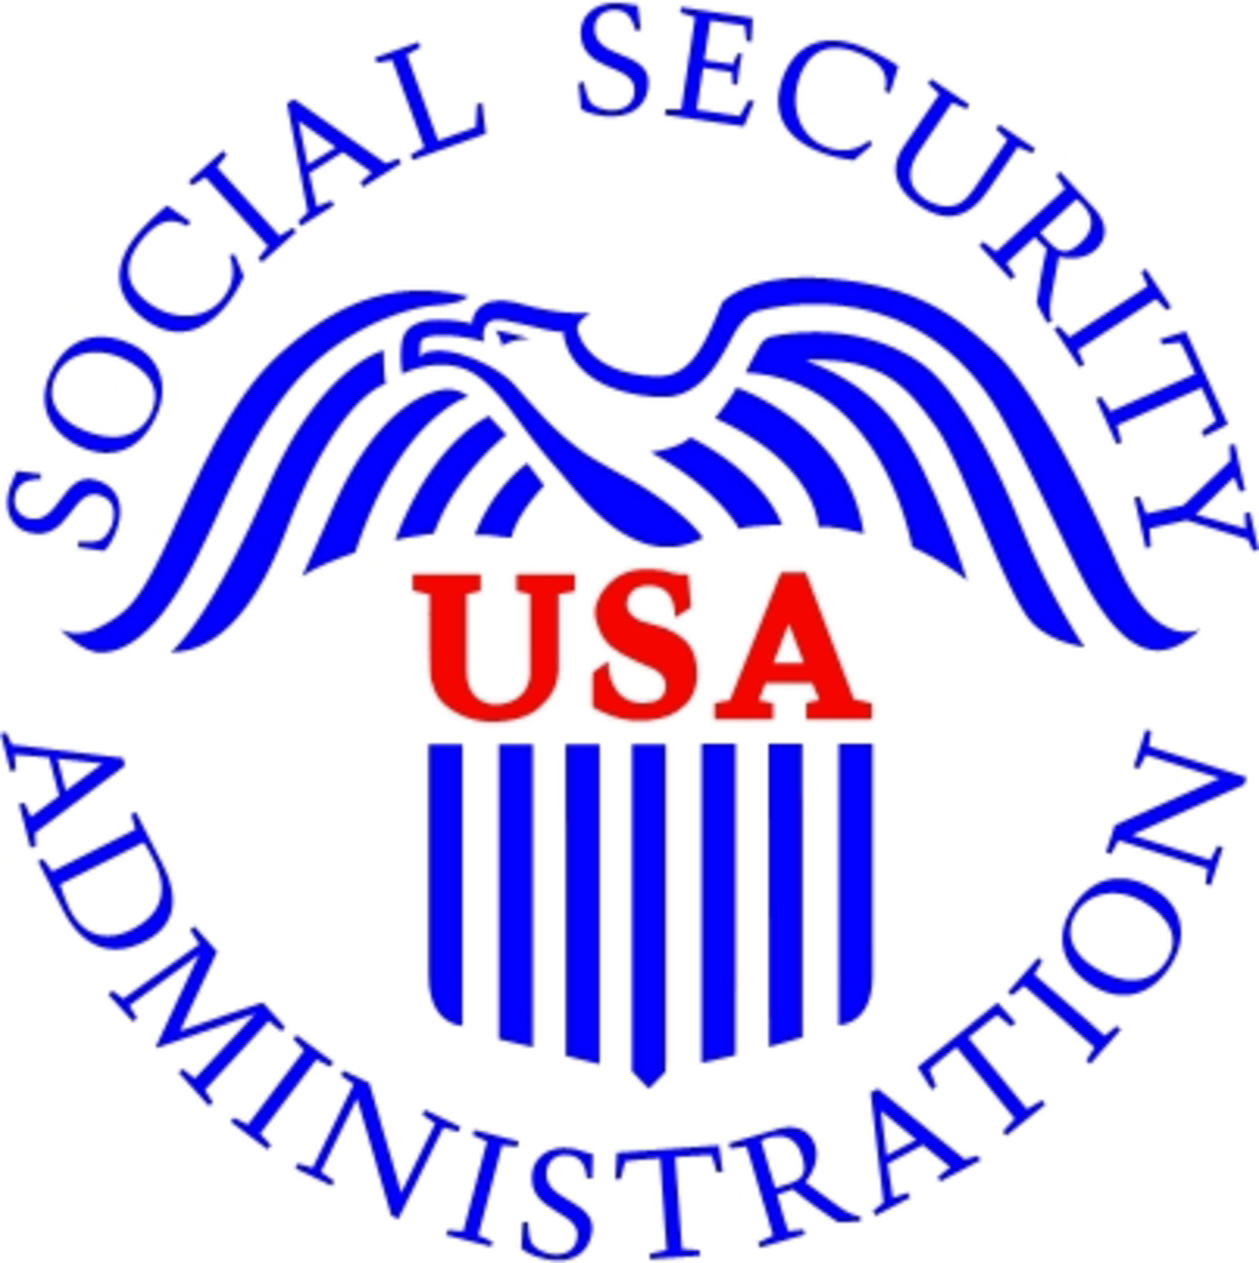 Social Security office closures are bad for workers